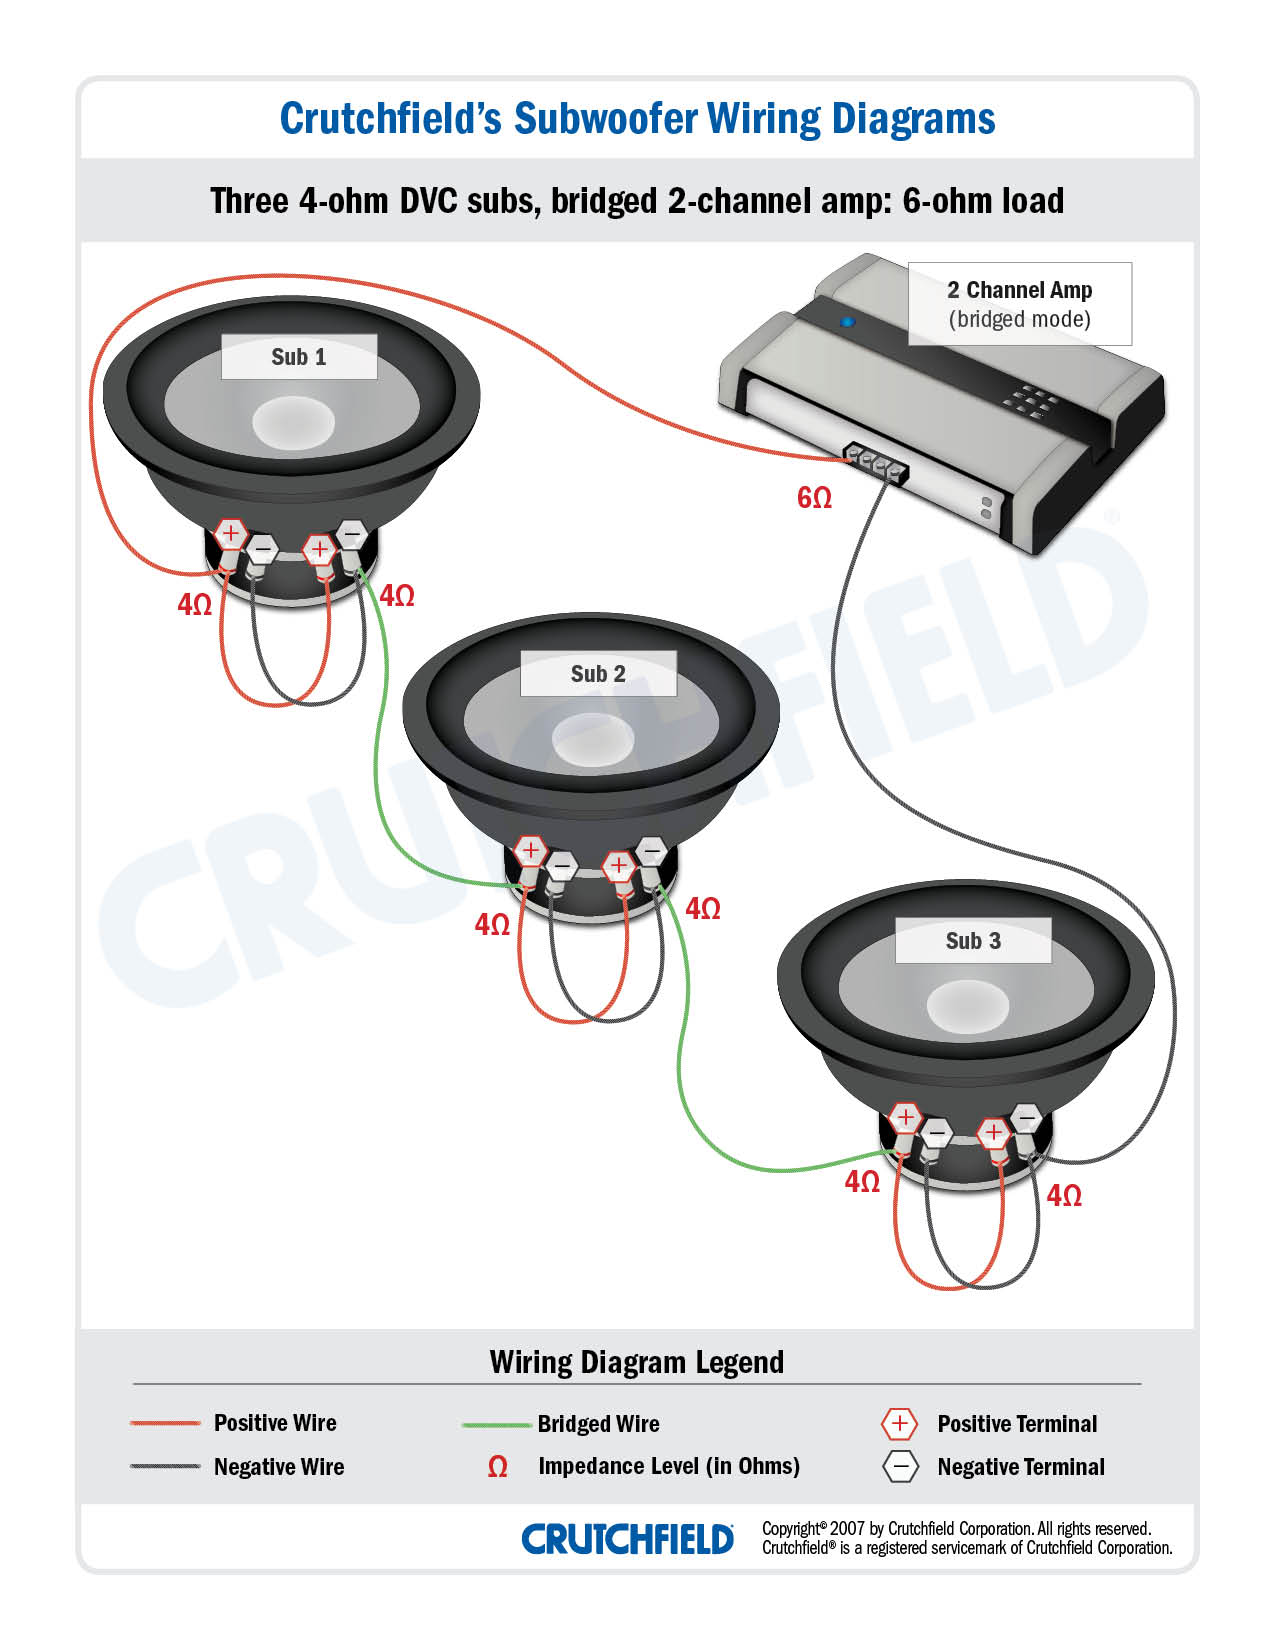 wiring subwoofers what s all this about ohms rh crutchfield com Bridging Veins Joist Bridging